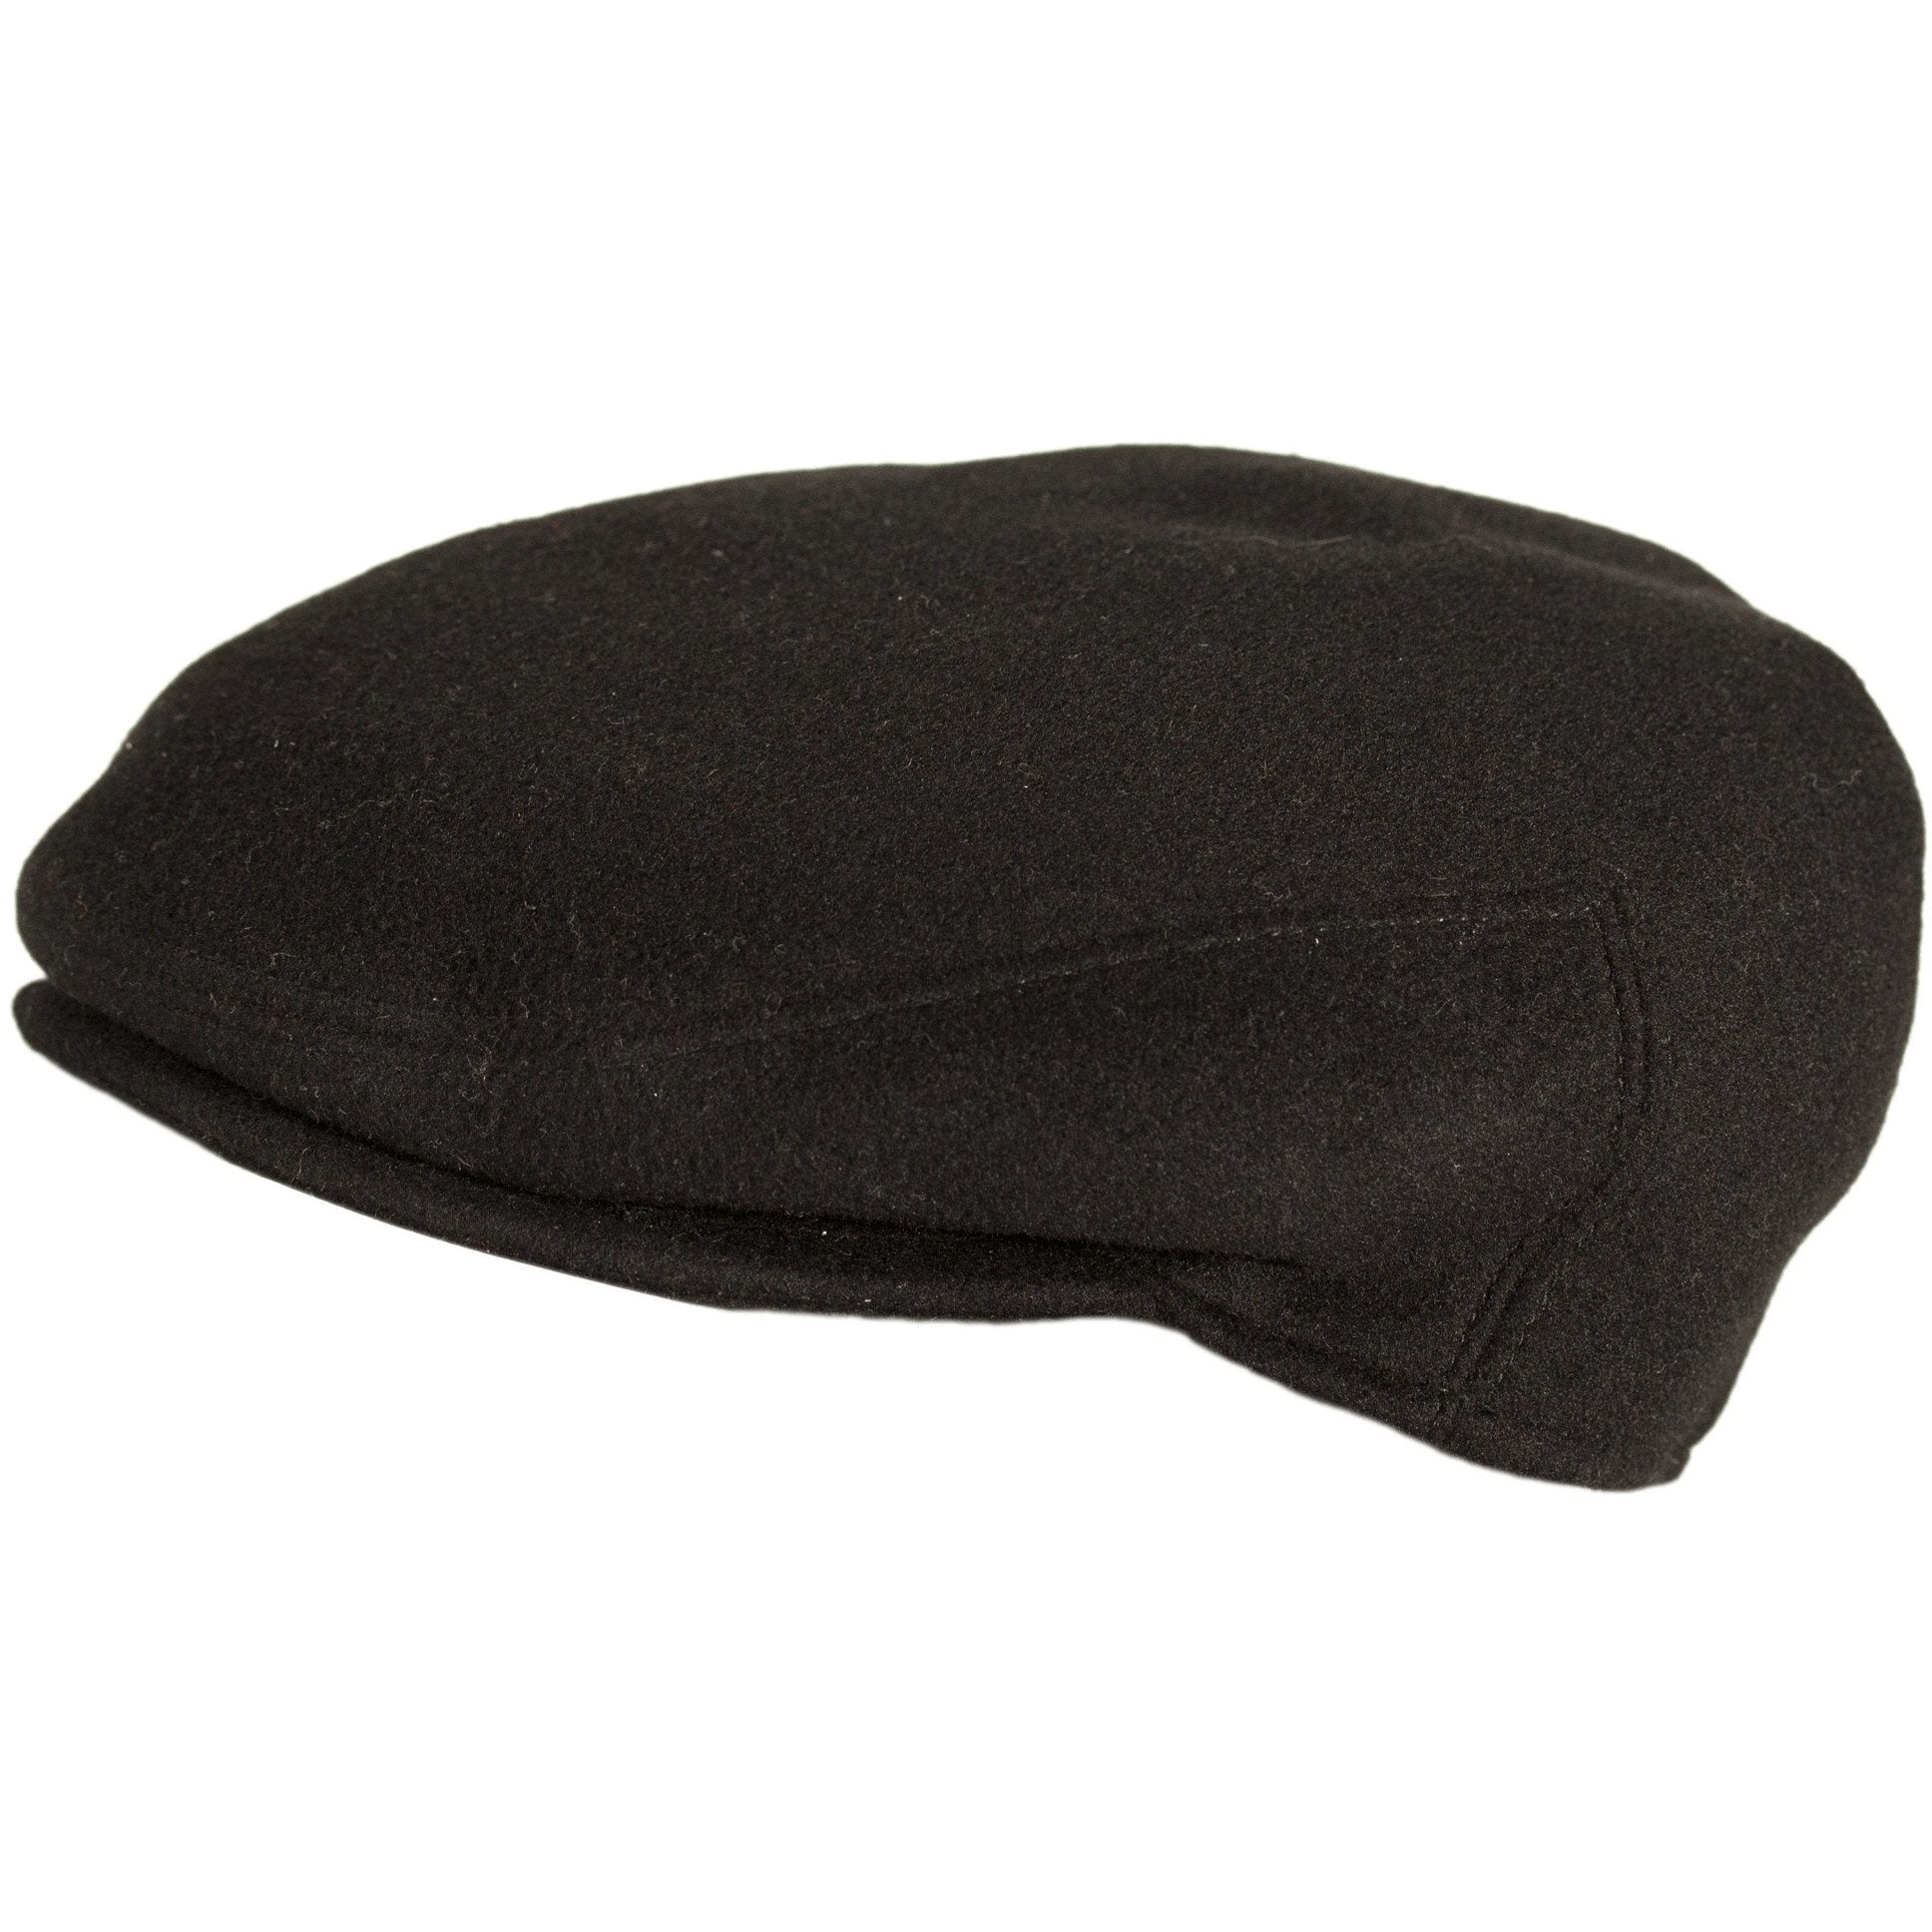 Pronto Cashmere Ivy Cap by Levine Hat Co. 147ced5f5fa